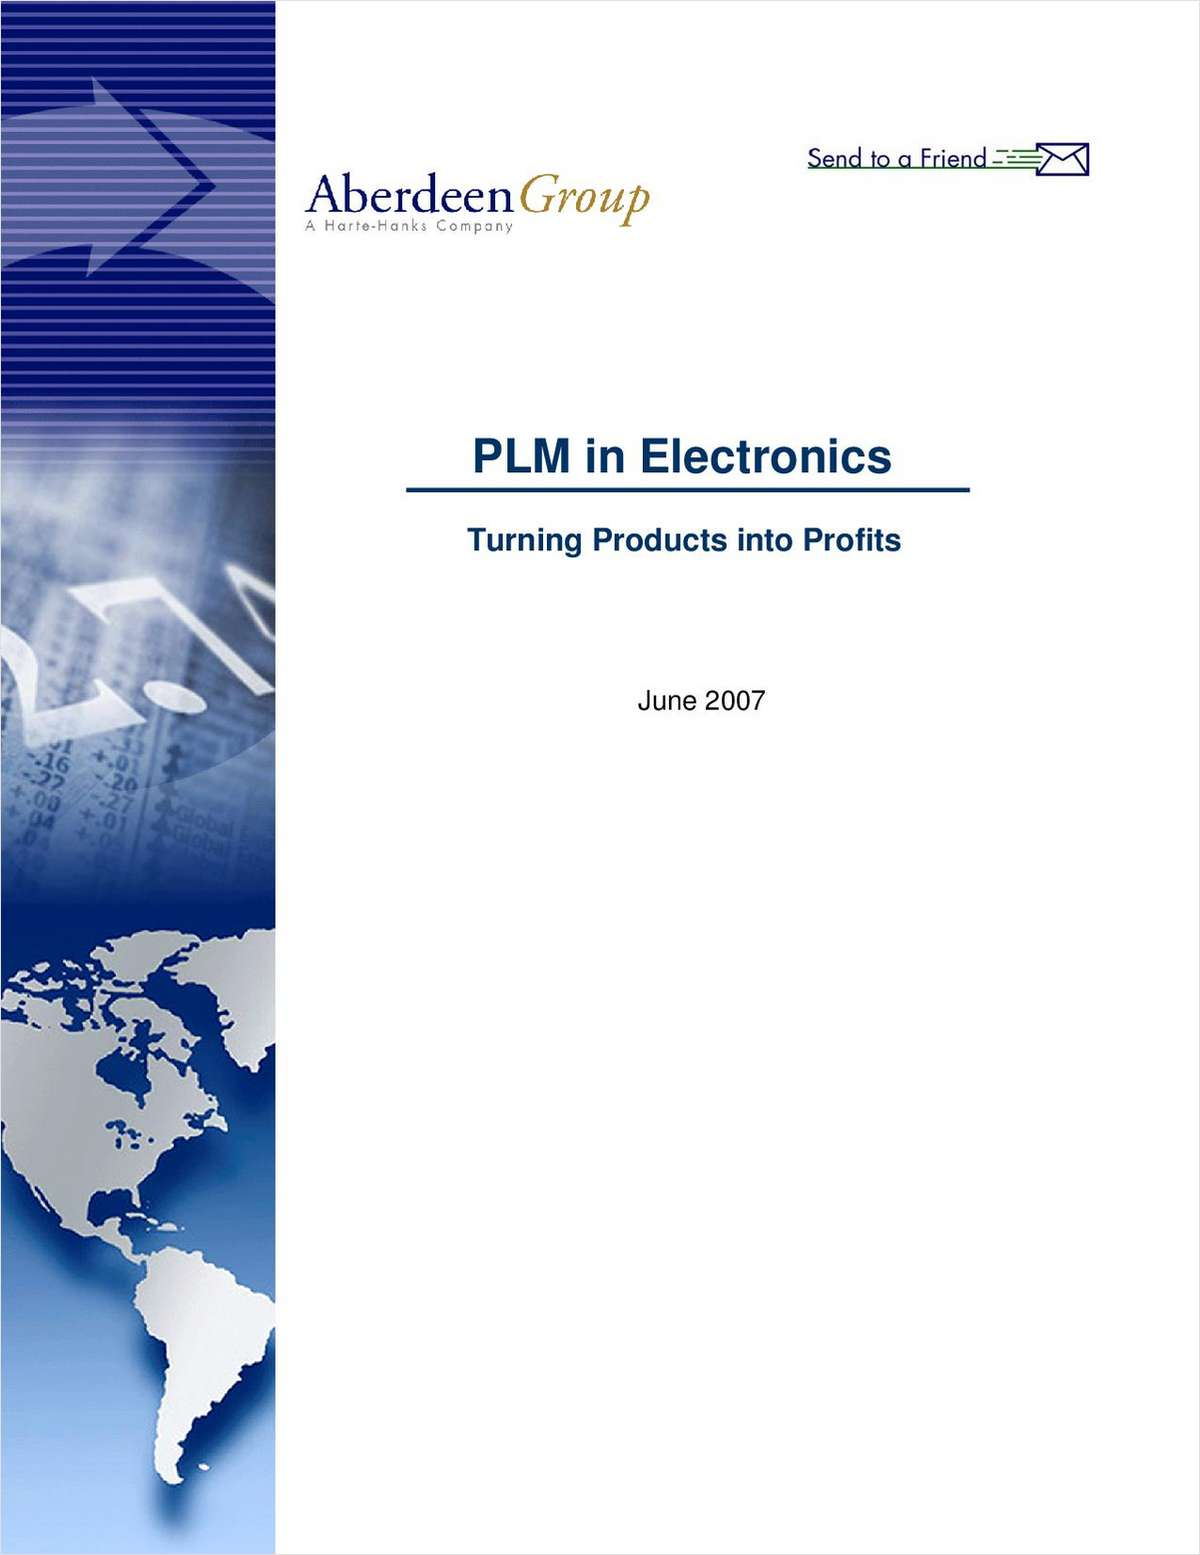 PLM in Electronics Report; Turning Products into Profits